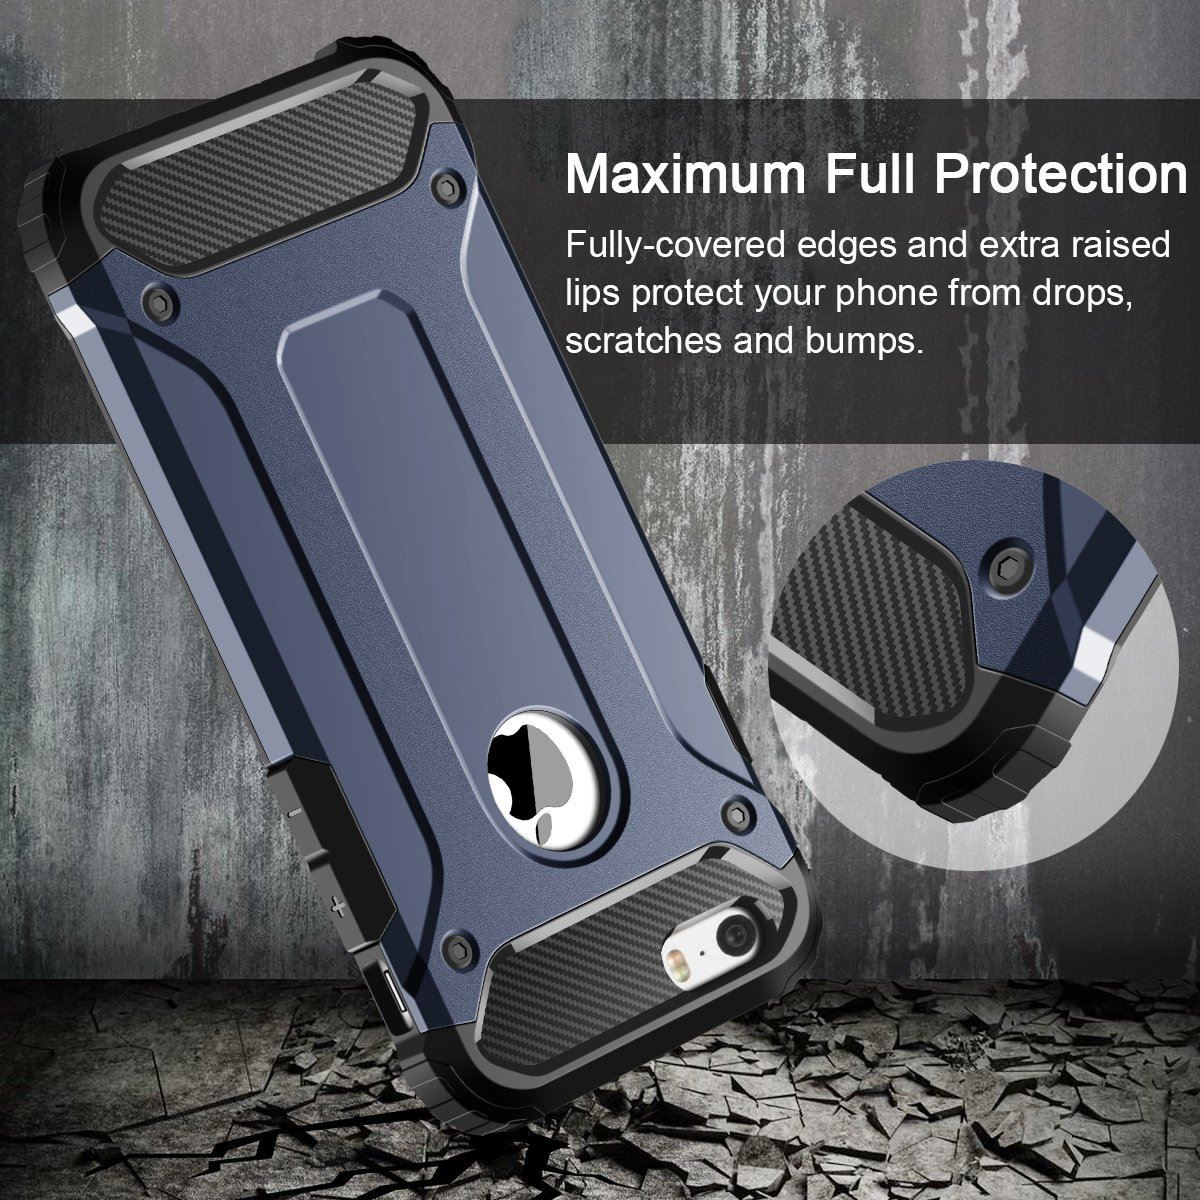 Hybrid-Armor-Shockproof-Rugged-Bumper-Case-For-Apple-iPhone-10-X-8-7-Plus-6s-5s miniature 59